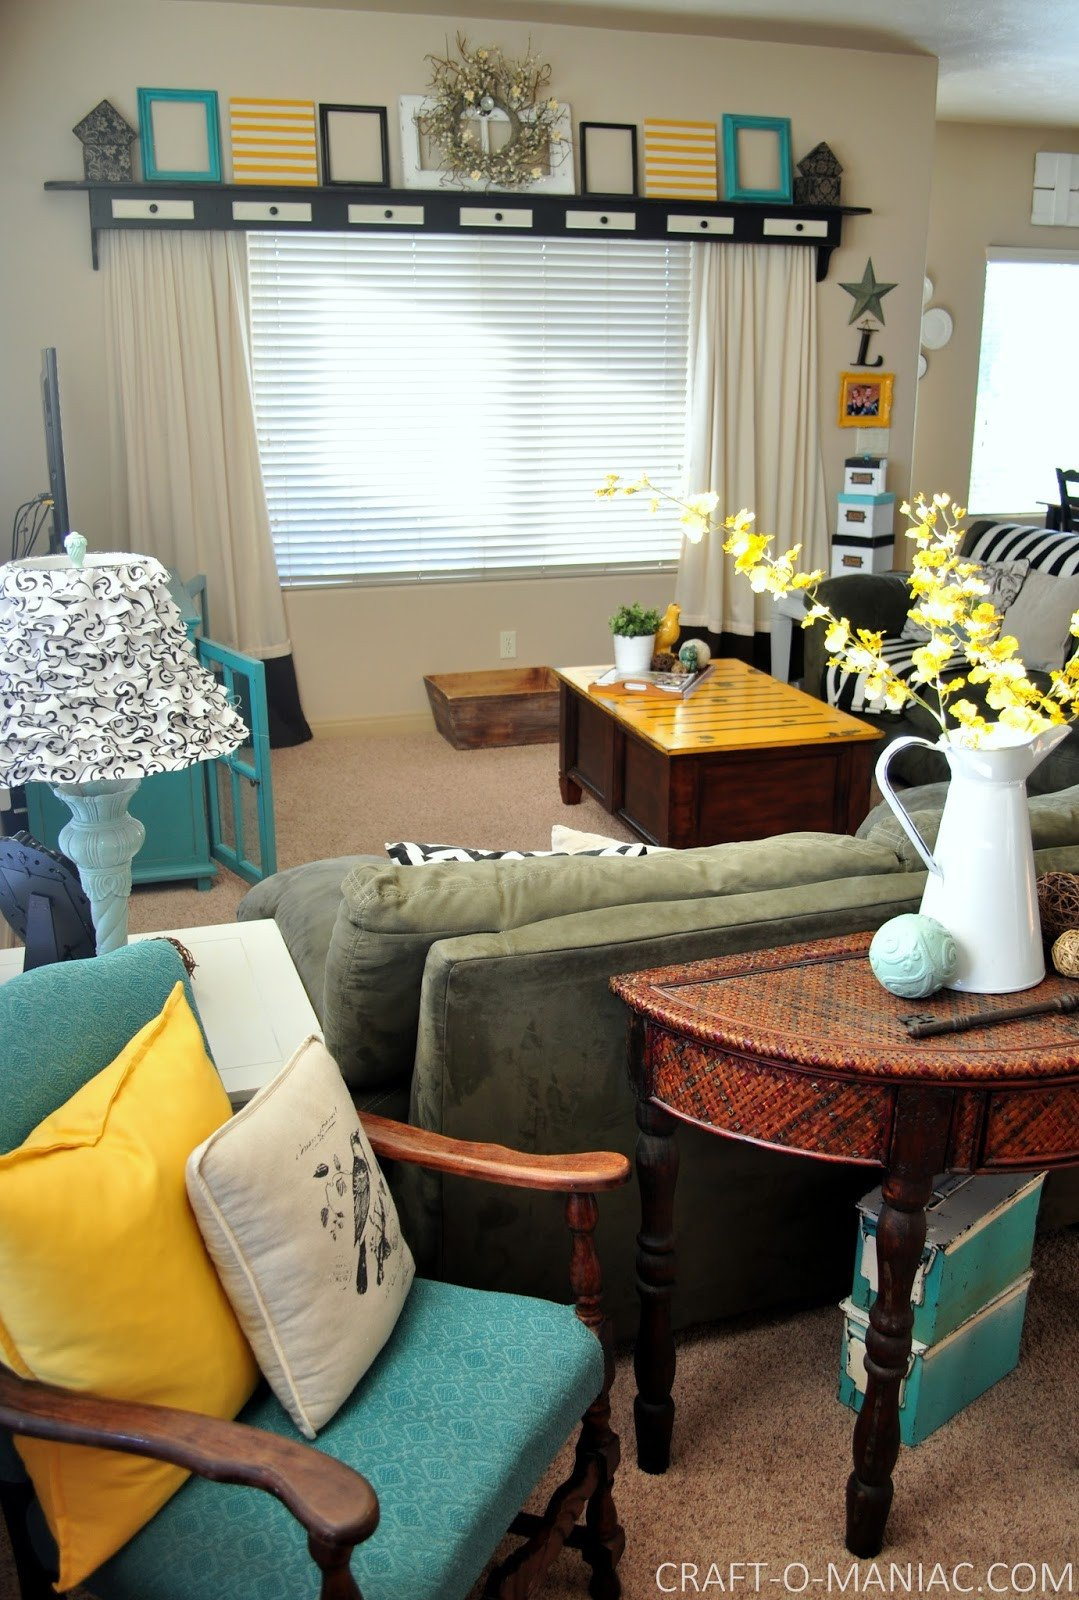 Yellow and Turquoise Home Decor Awesome Home Decor My Turquoise and Yellow Family Room Craft O Maniac